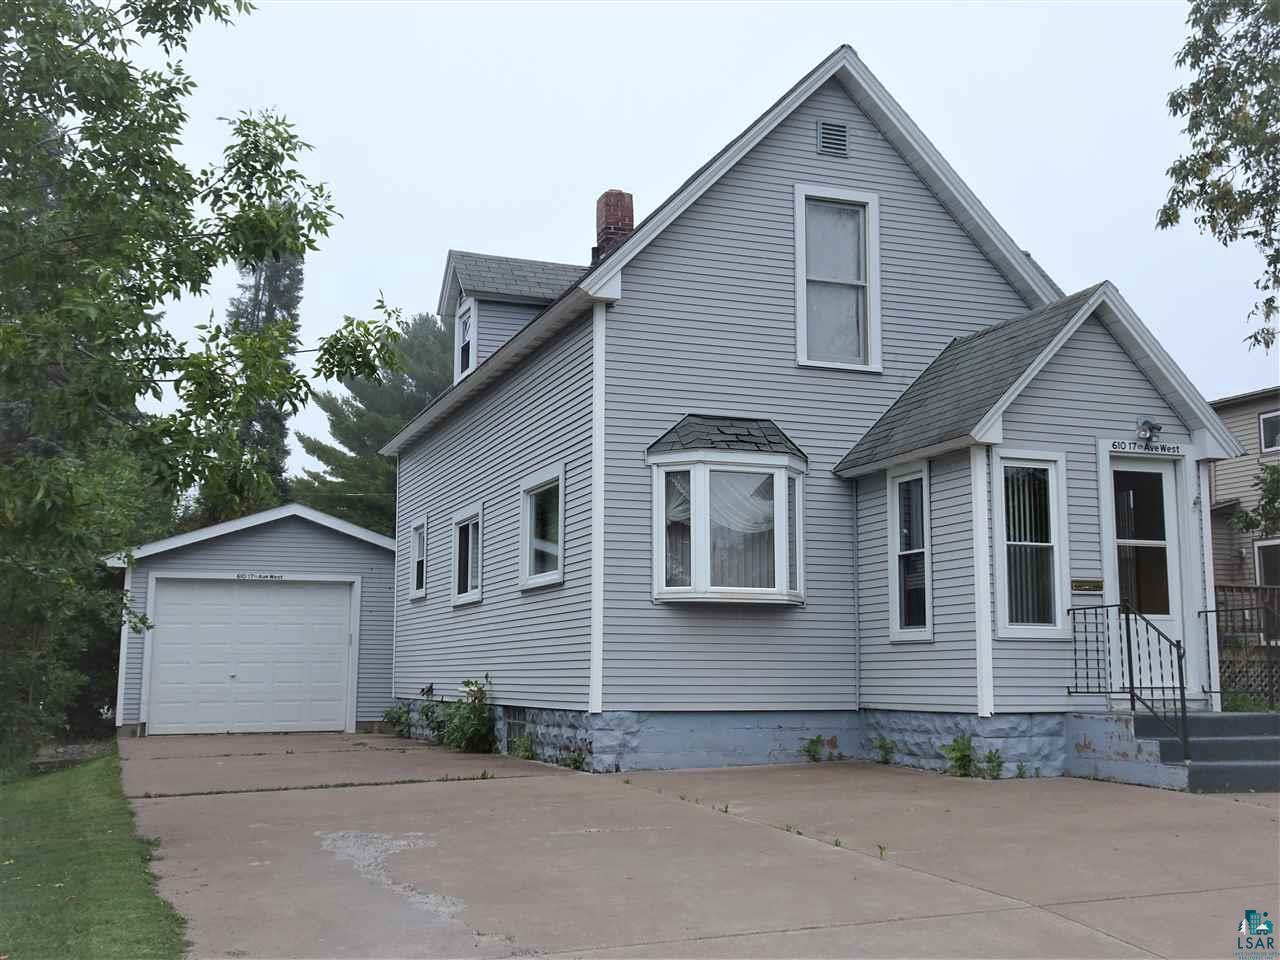 This beautifully maintained home is in the heart of Ashland.  Just a block away from the walking trail which leads to beautiful Lake Superior.  Minutes away from a convenient neighborhood store. Close to hospital and schools.  The house has a great deal of space for a large family with plenty of yard space out back.  It is a few blocks away from ball diamonds and city playground. It has a small first floor bedroom with a 3/4 bath in it.  This space could be used for a bedroom for those that may not want to tackle stairs any more.  This space could be converted into a laundry room/bathroom, and the new owners will still have three spacious bedrooms on the second floor. There is a spacious hallway and hardwood floors on the second story.  Newer siding and windows make